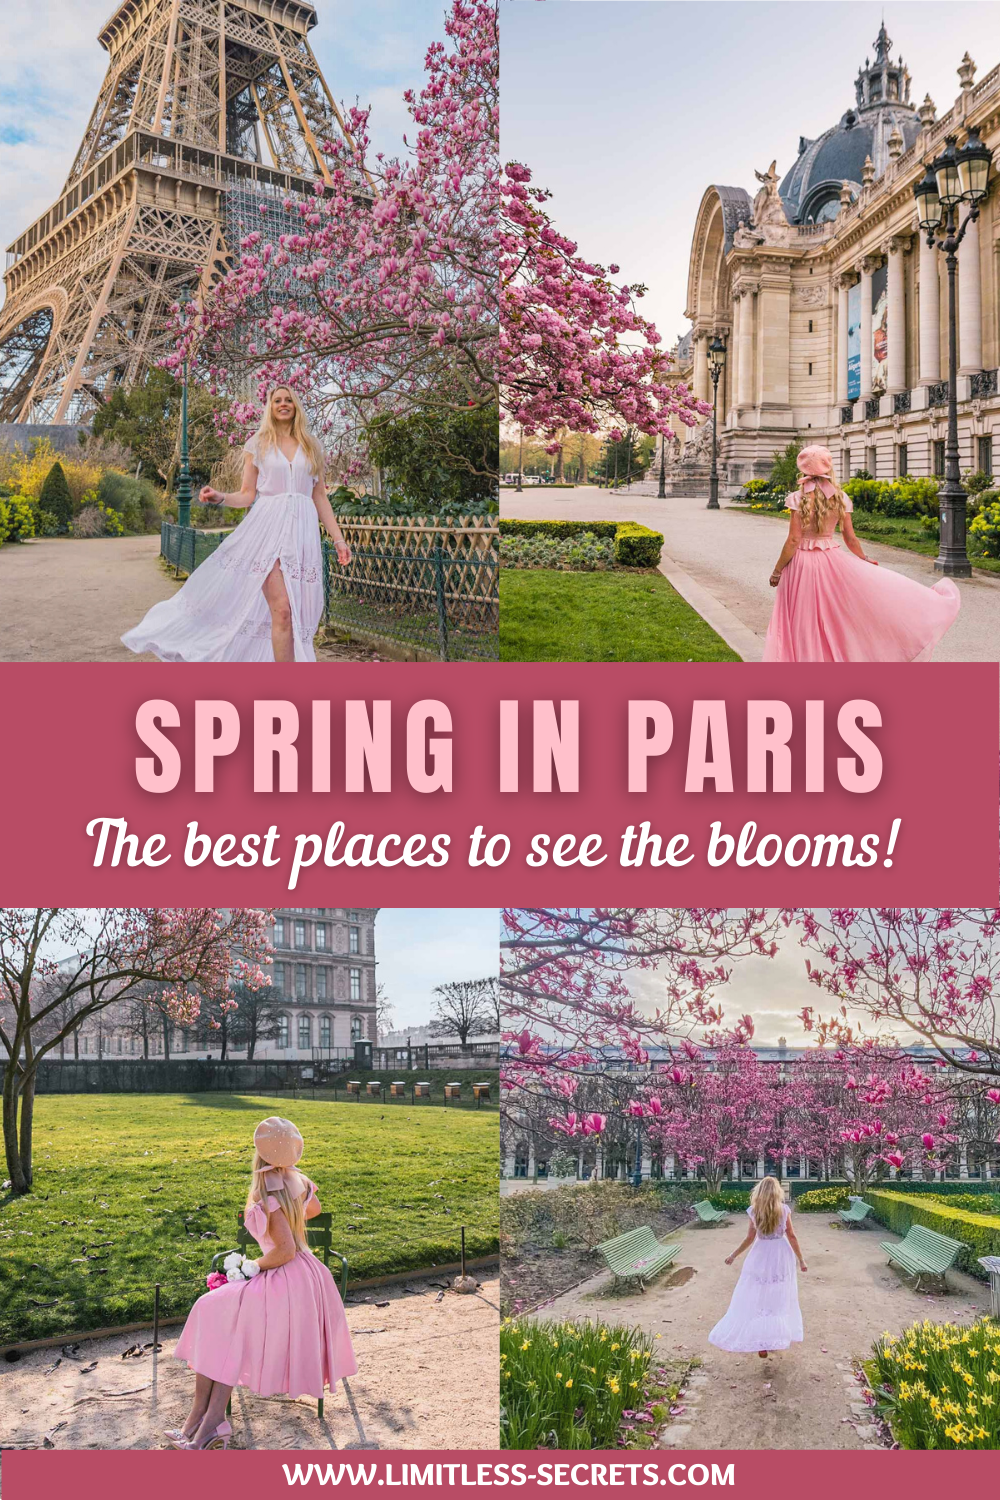 Paris in spring is a dream! If you are wondering where the best places to see blooms in Paris are, I got you covered! With this ultimate guide about spring in Paris you will know where to enjoy and capture all the blossoms in Paris during the springtime! You will also get all my local tips for the most instagrammable places in Paris in spring!